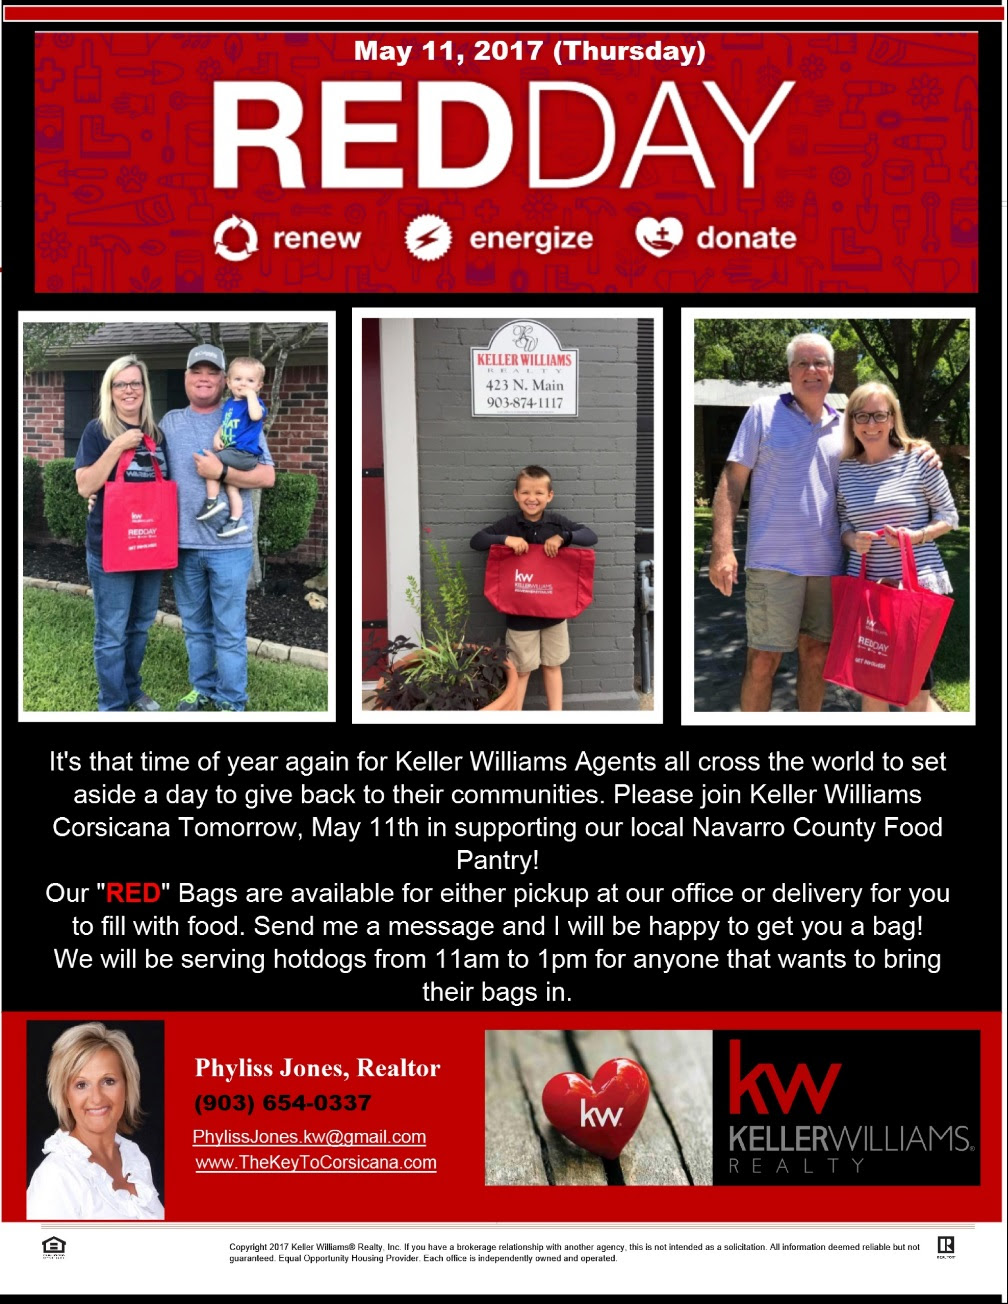 "Please join Keller Williams Corsicana Tomorrow, May 11th in supporting our local Navarro County Food Pantry! Our ""RED"" Bags are available I can either deliver a bag to be filled or you can pickup at our office. We will be serving hotdogs from 11am to 1pm for anyone that wants to bring their bags in. =)  You may also call me for more information Phyliss Jones, Realtor (903) 654-0337 #Givewhereyoulive #Redday #Renew #Energize #Donate #SupportRedday #Kellerwilliamscorsicana"